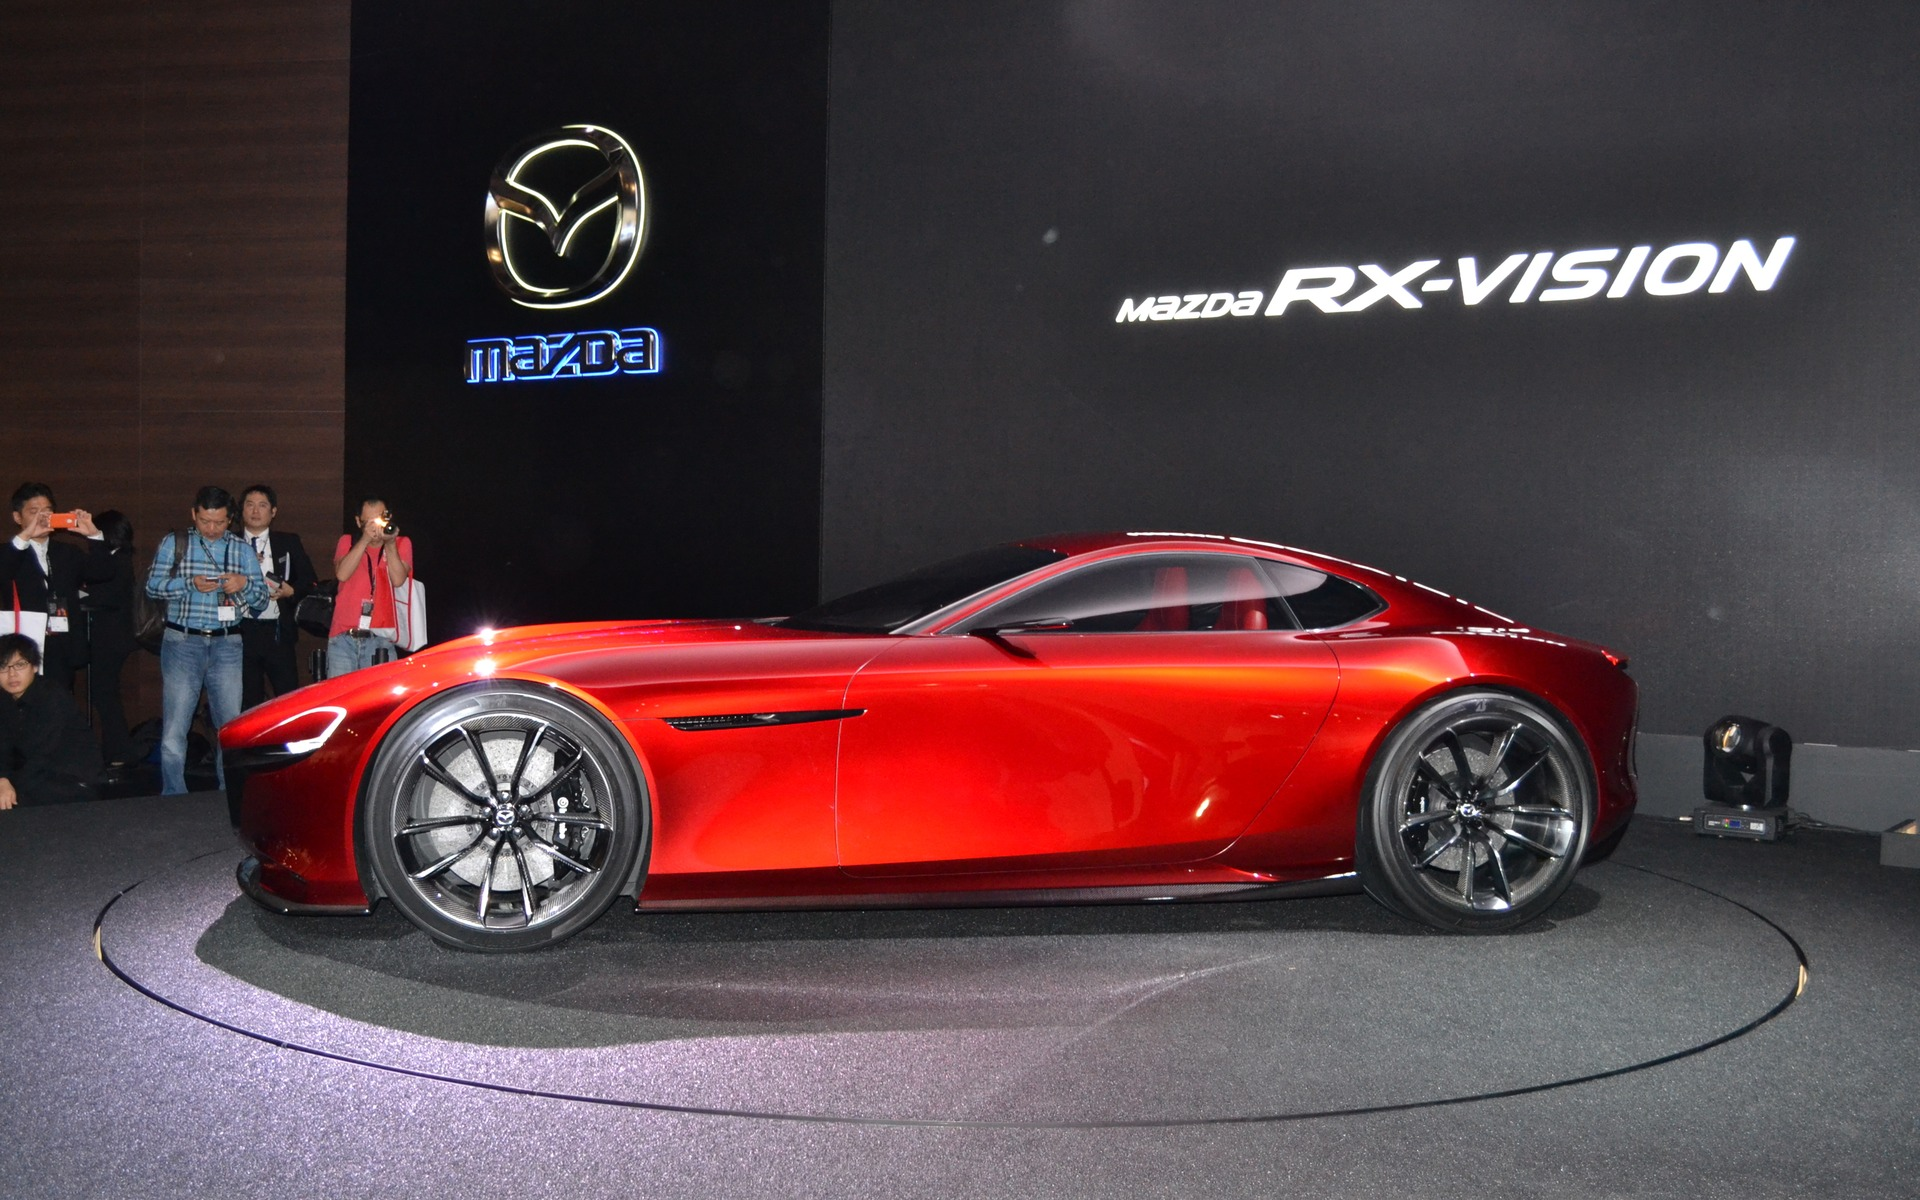 https://i.gaw.to/photos/2/2/3/223346_2015_Mazda_Concept.jpg